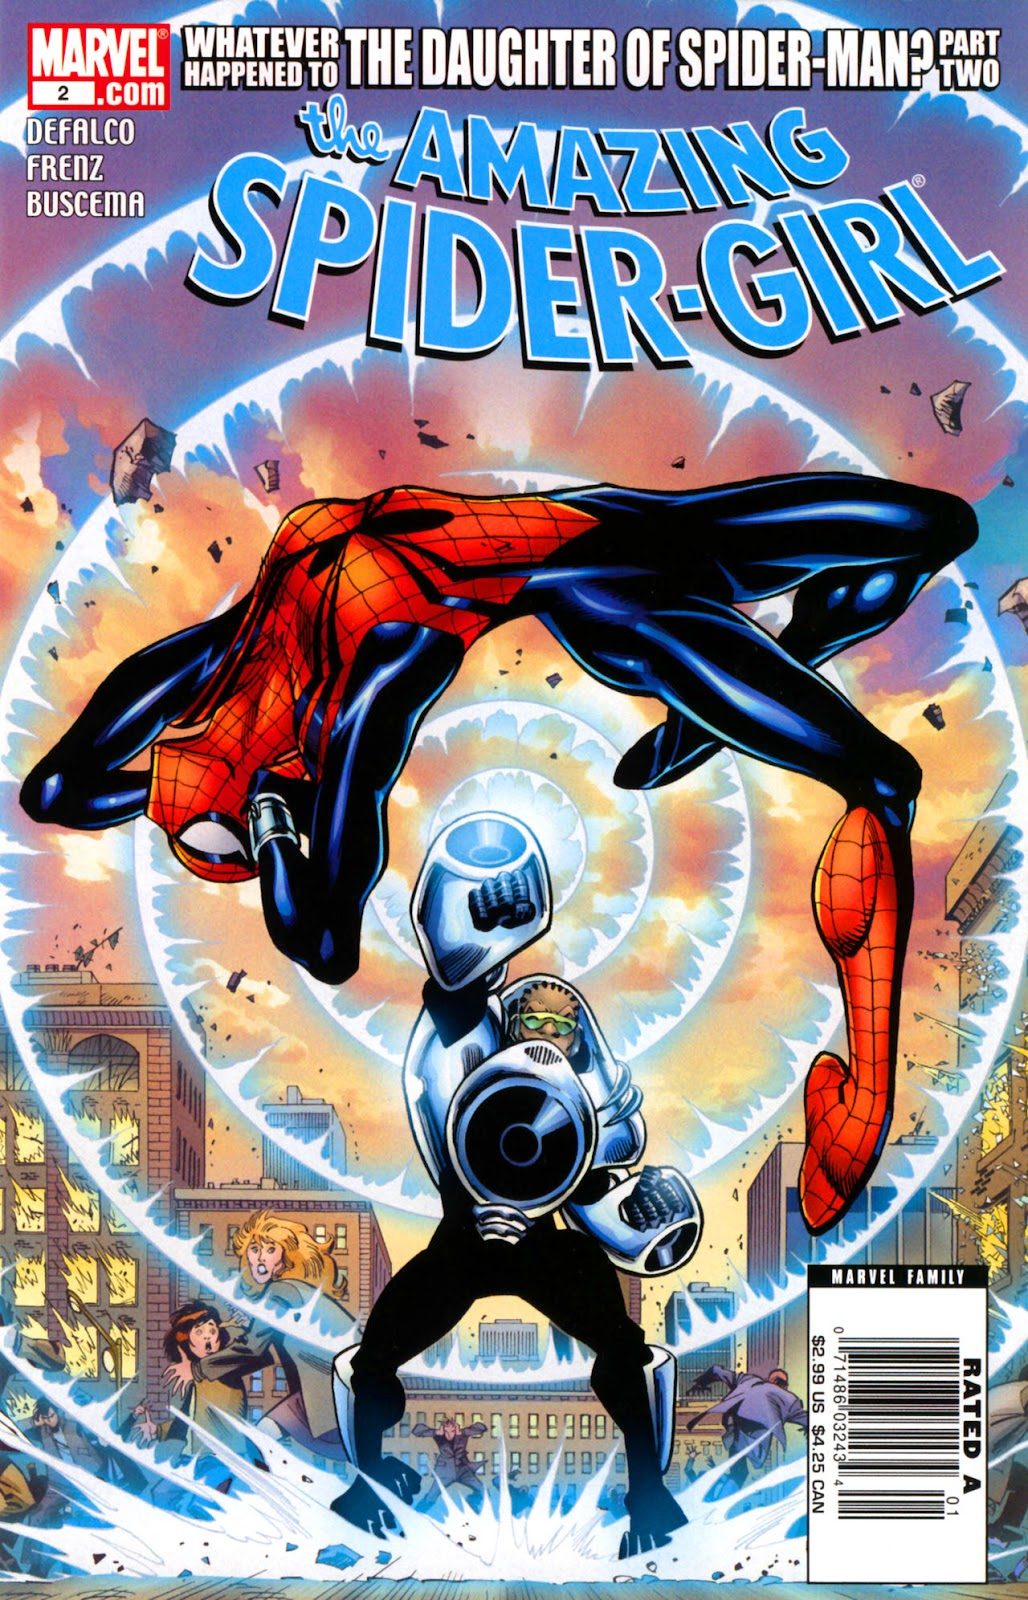 Amazing Spider-Girl Issue #2 #3 - English 1